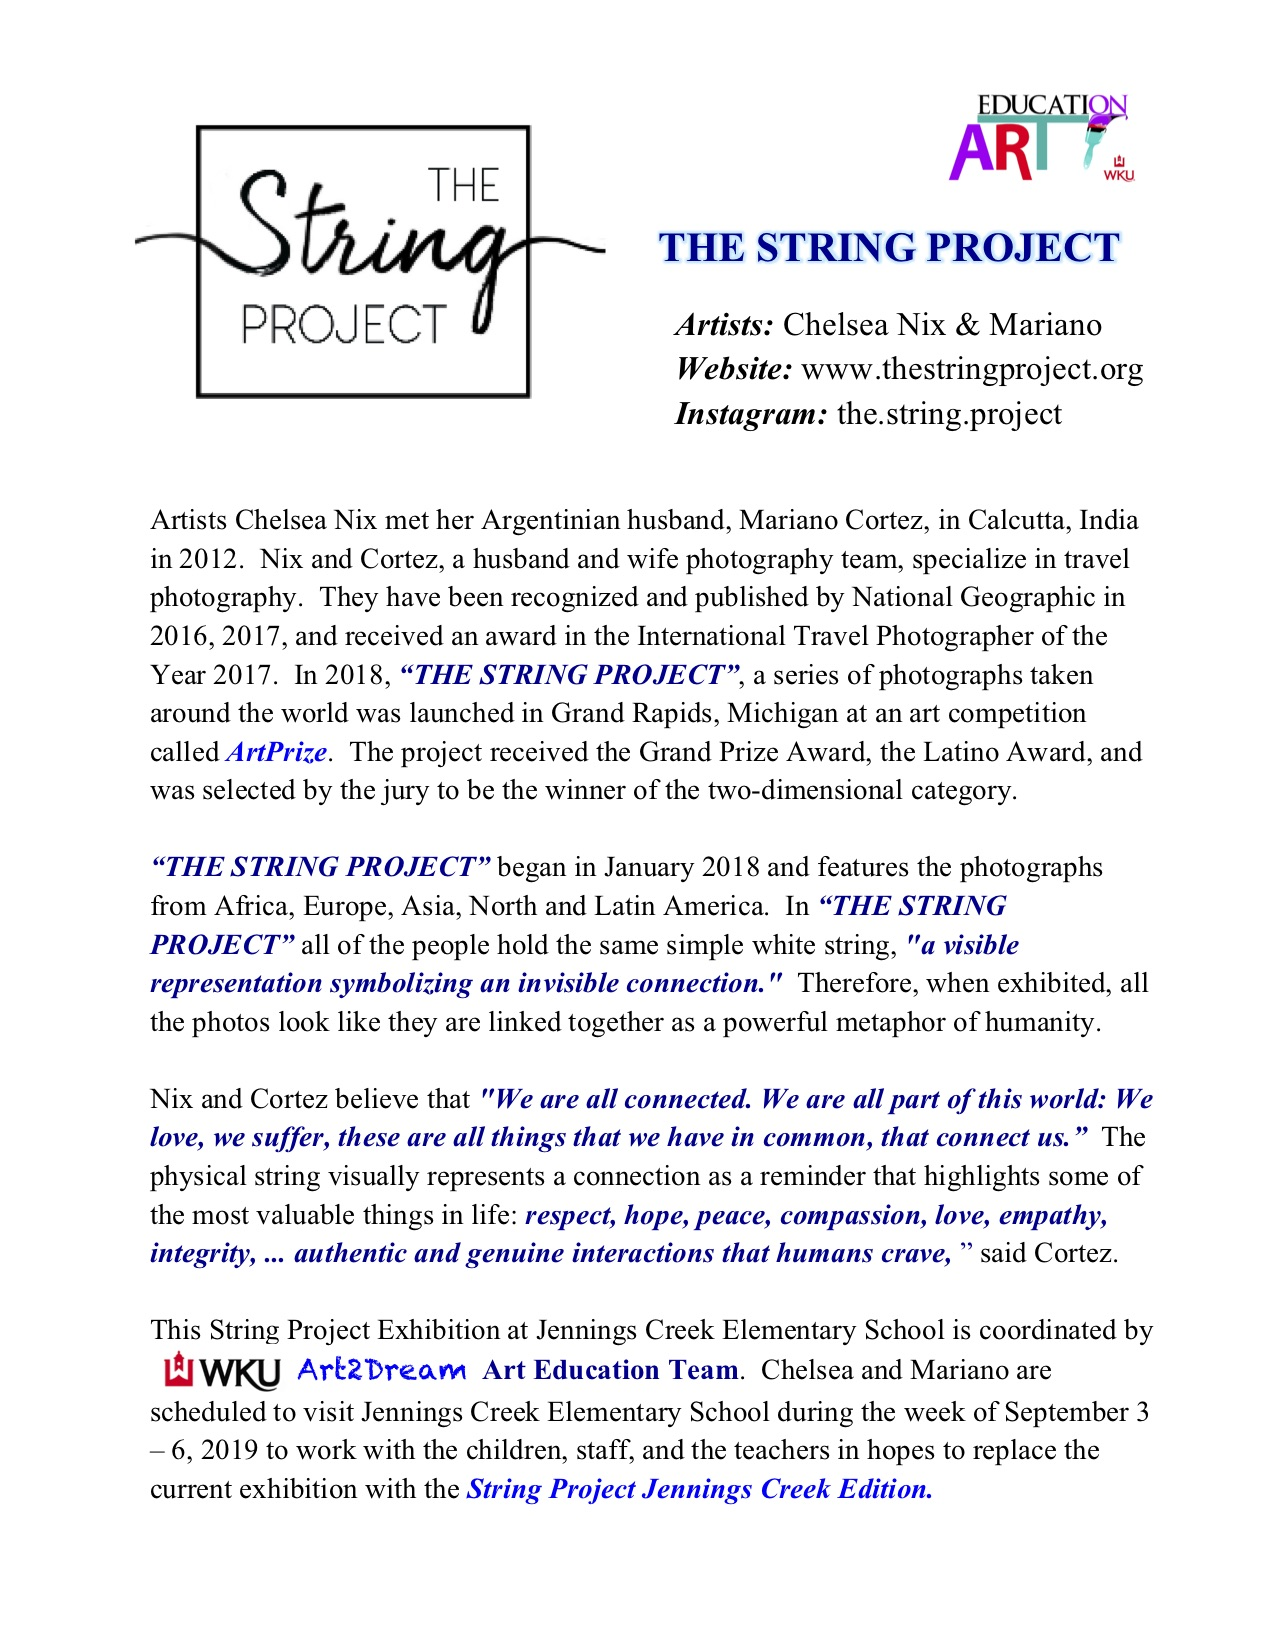 JC_THE STRING PROJECT.jpg